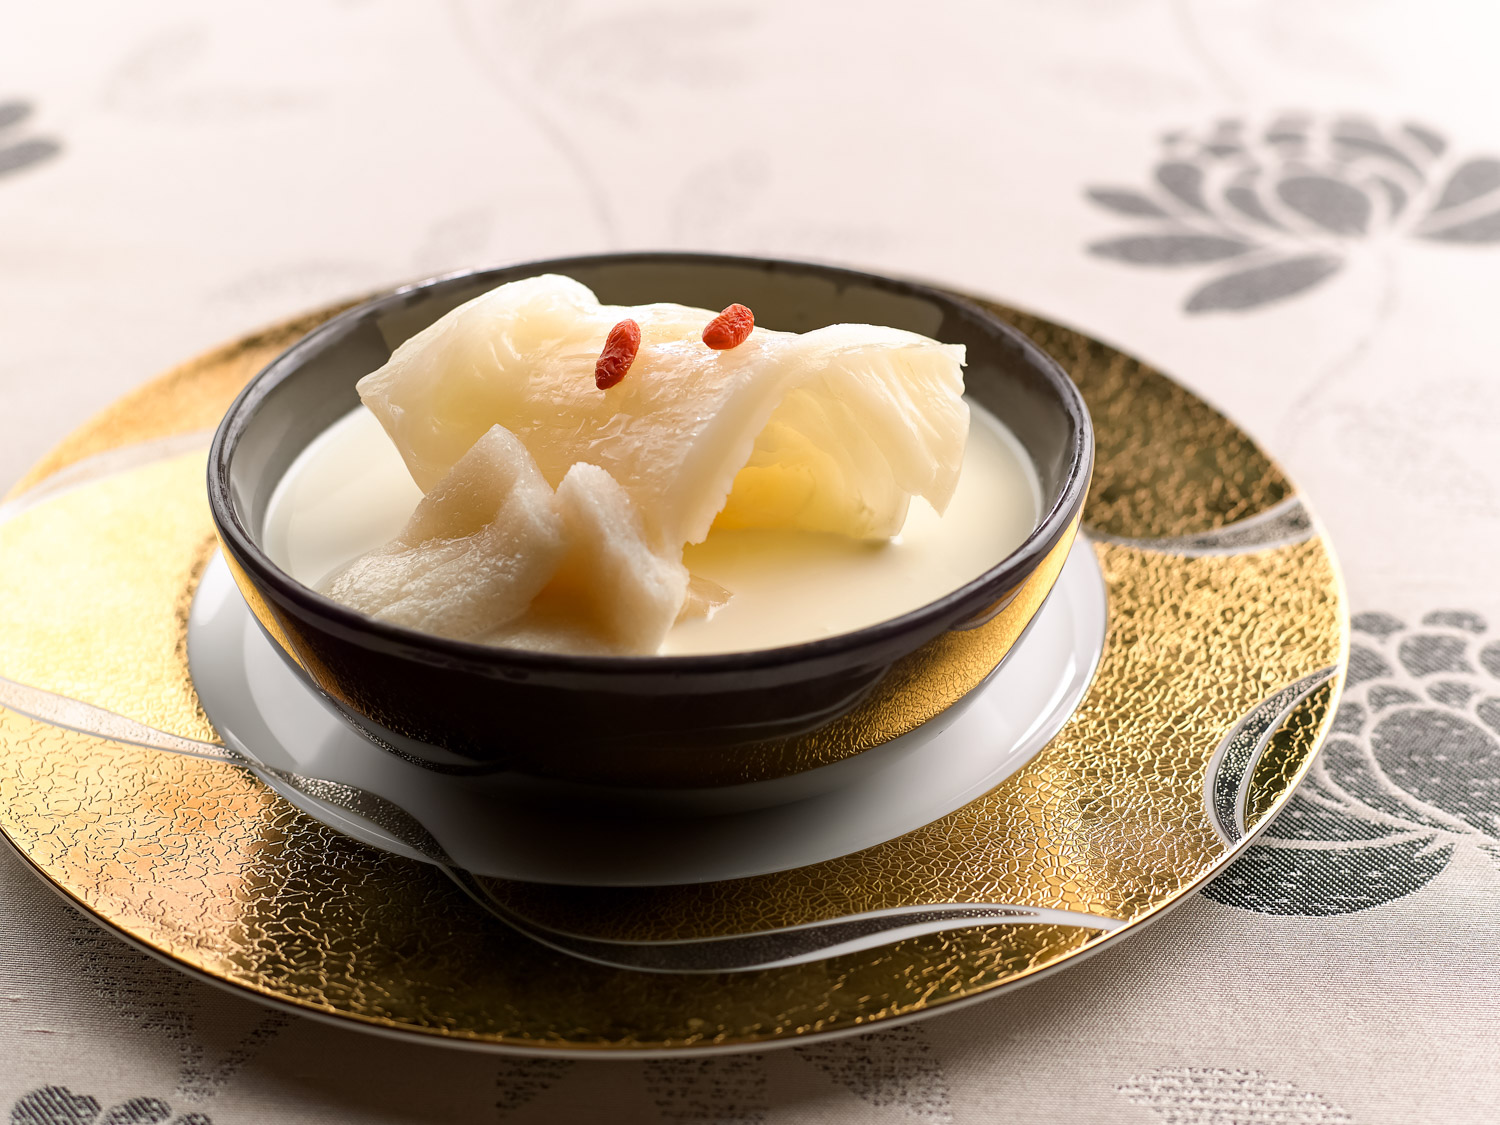 Double-boiled Fish Maw with Bamboo Pith in Fish Bone Broth (竹笙花胶鱼骨汤)